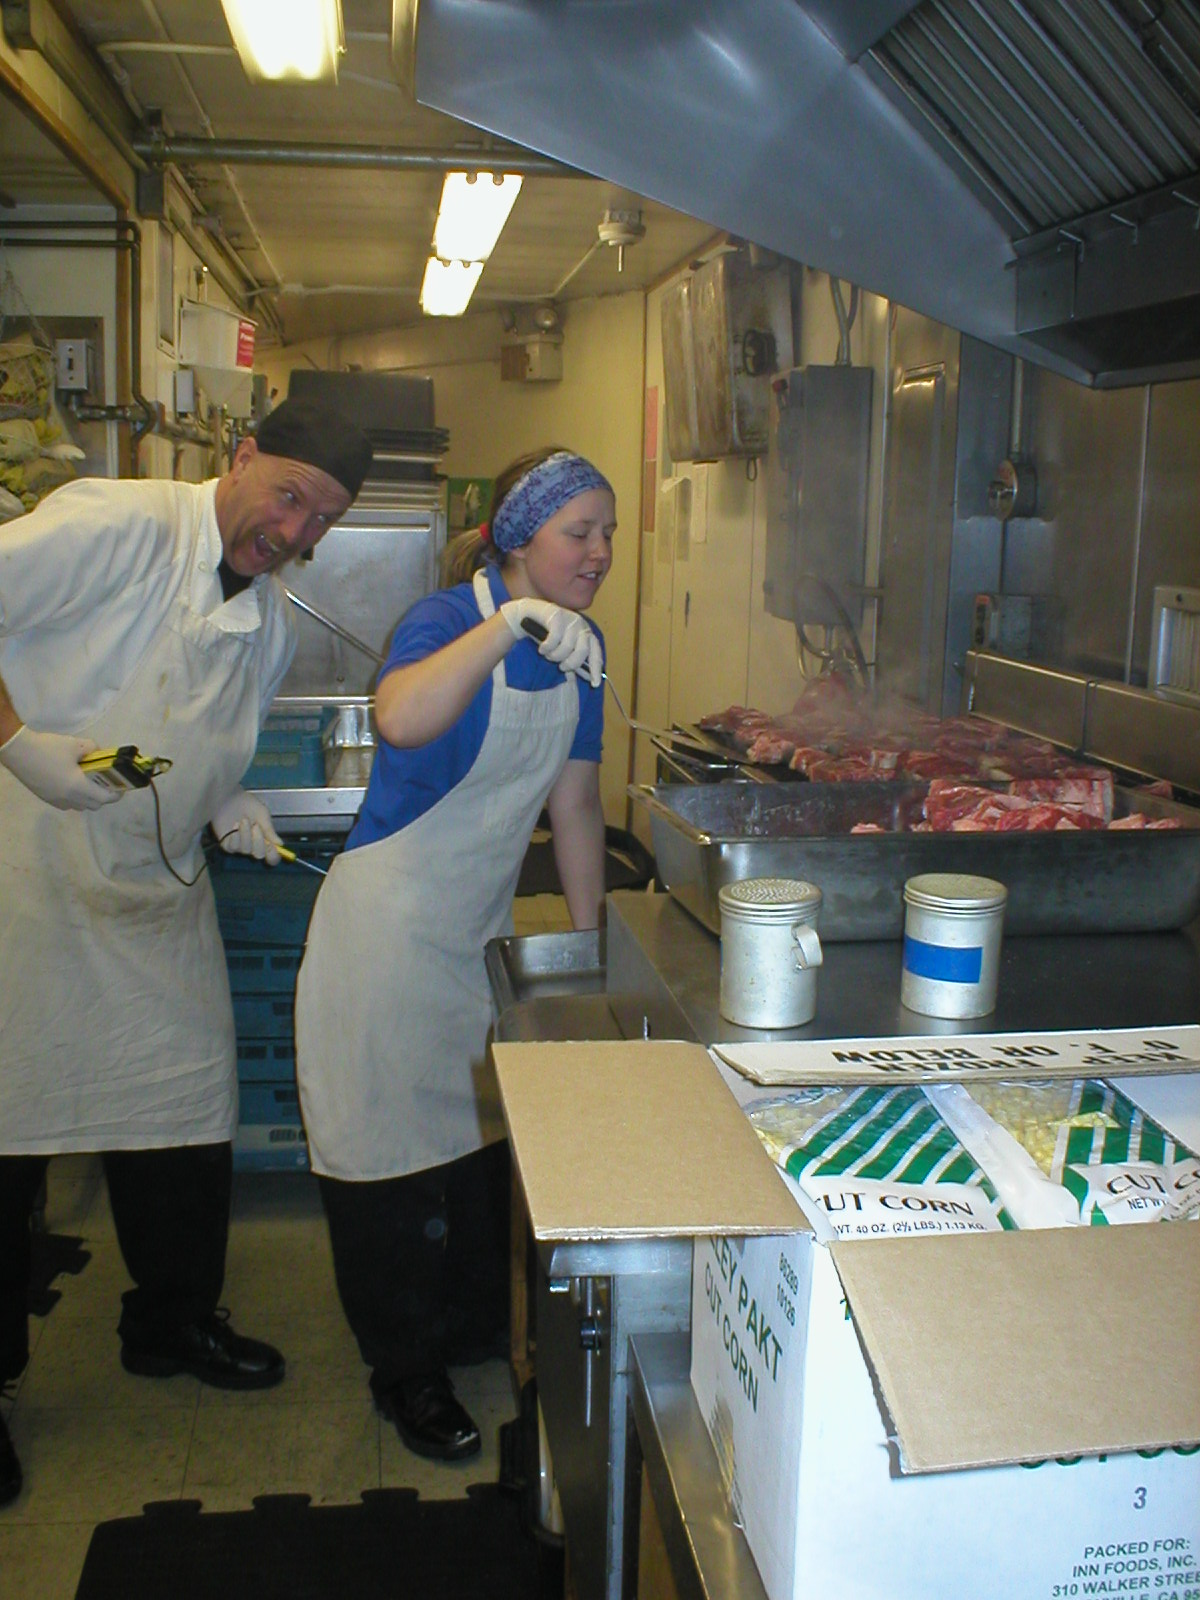 Lacy Shelby, South Pole production cook, circa 2002